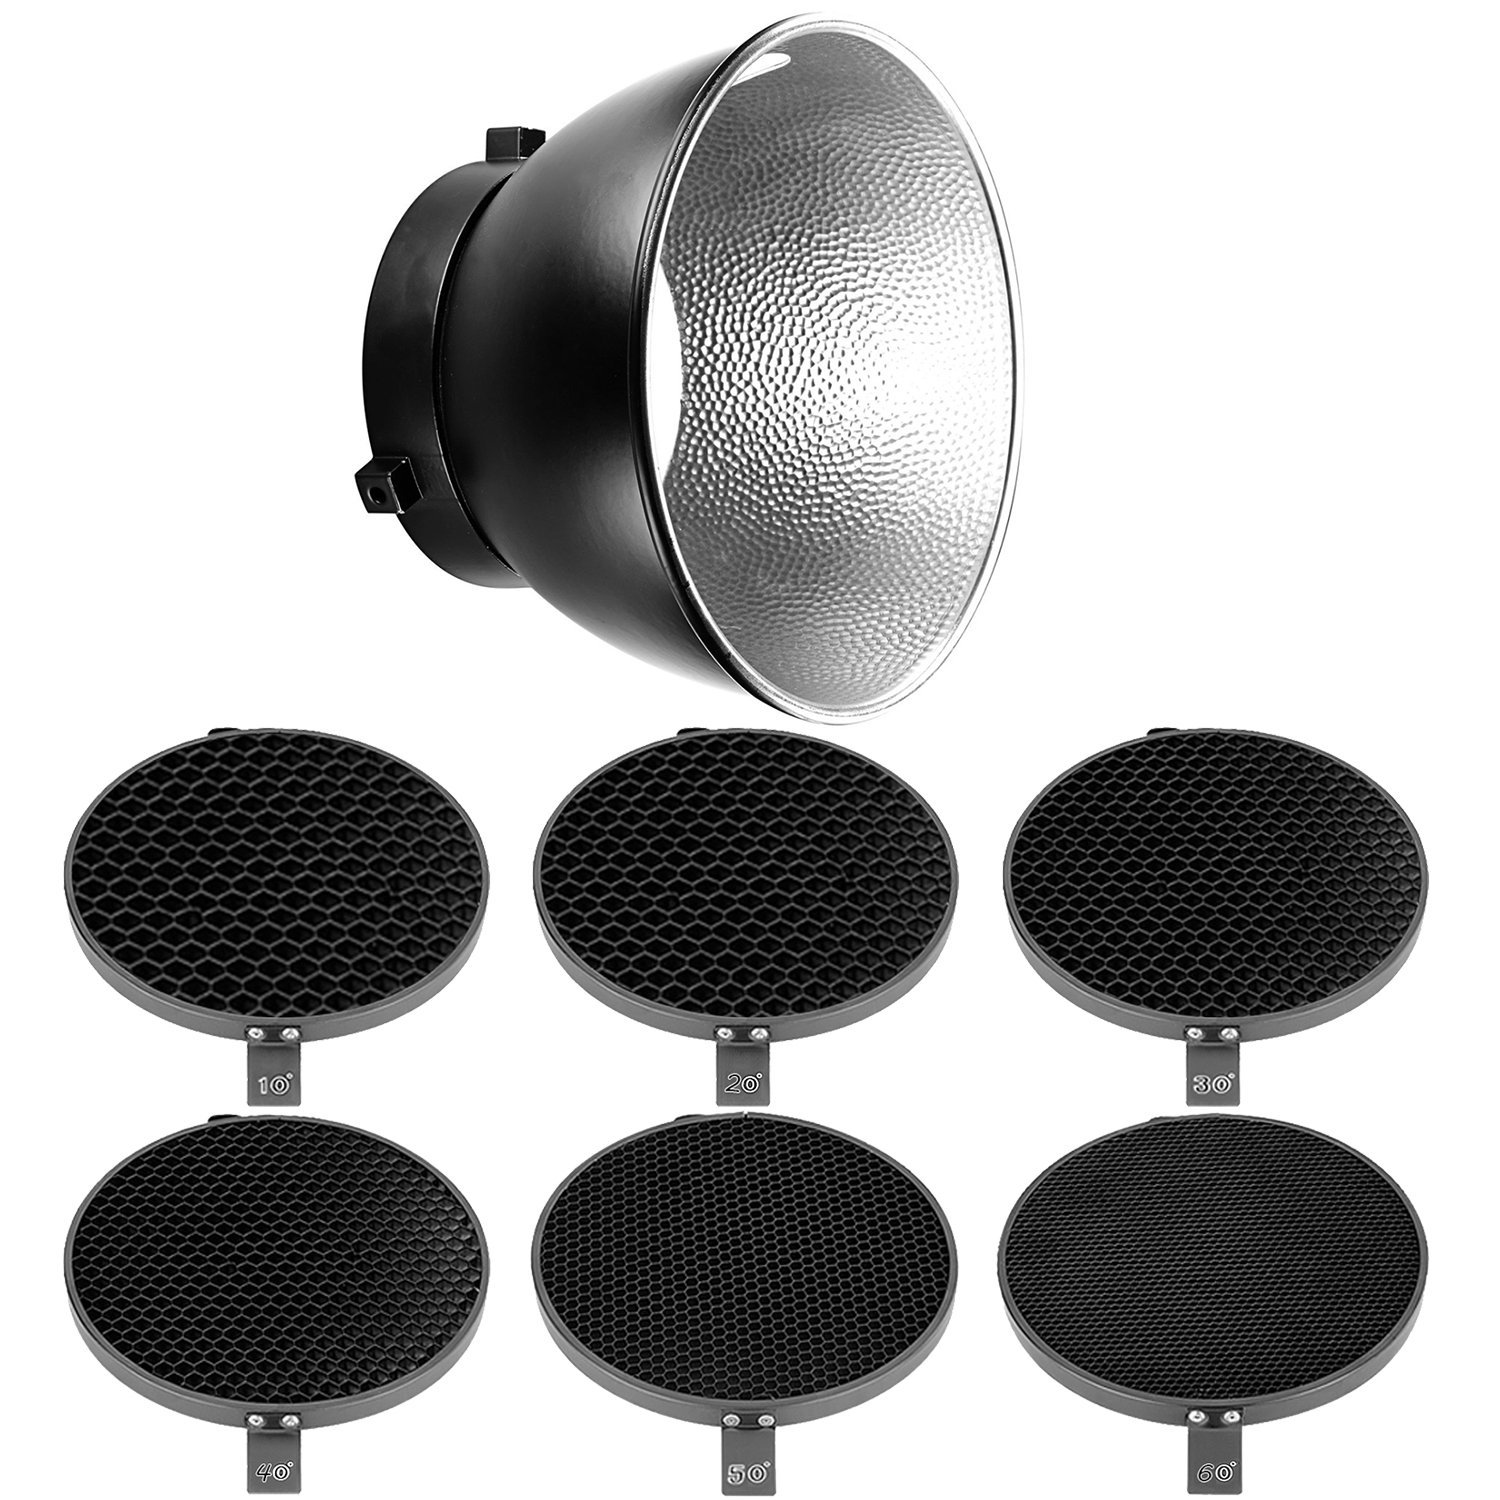 Neewer 7 inches/18 centimeters Standard Reflector Diffuser with 10/20/30/40/50/60 Degree Honeycomb Grid for Bowens Mount Studio Strobe Flash Speedlite Like Vision 4,Vision 5,DS300,S-300N,S-400N